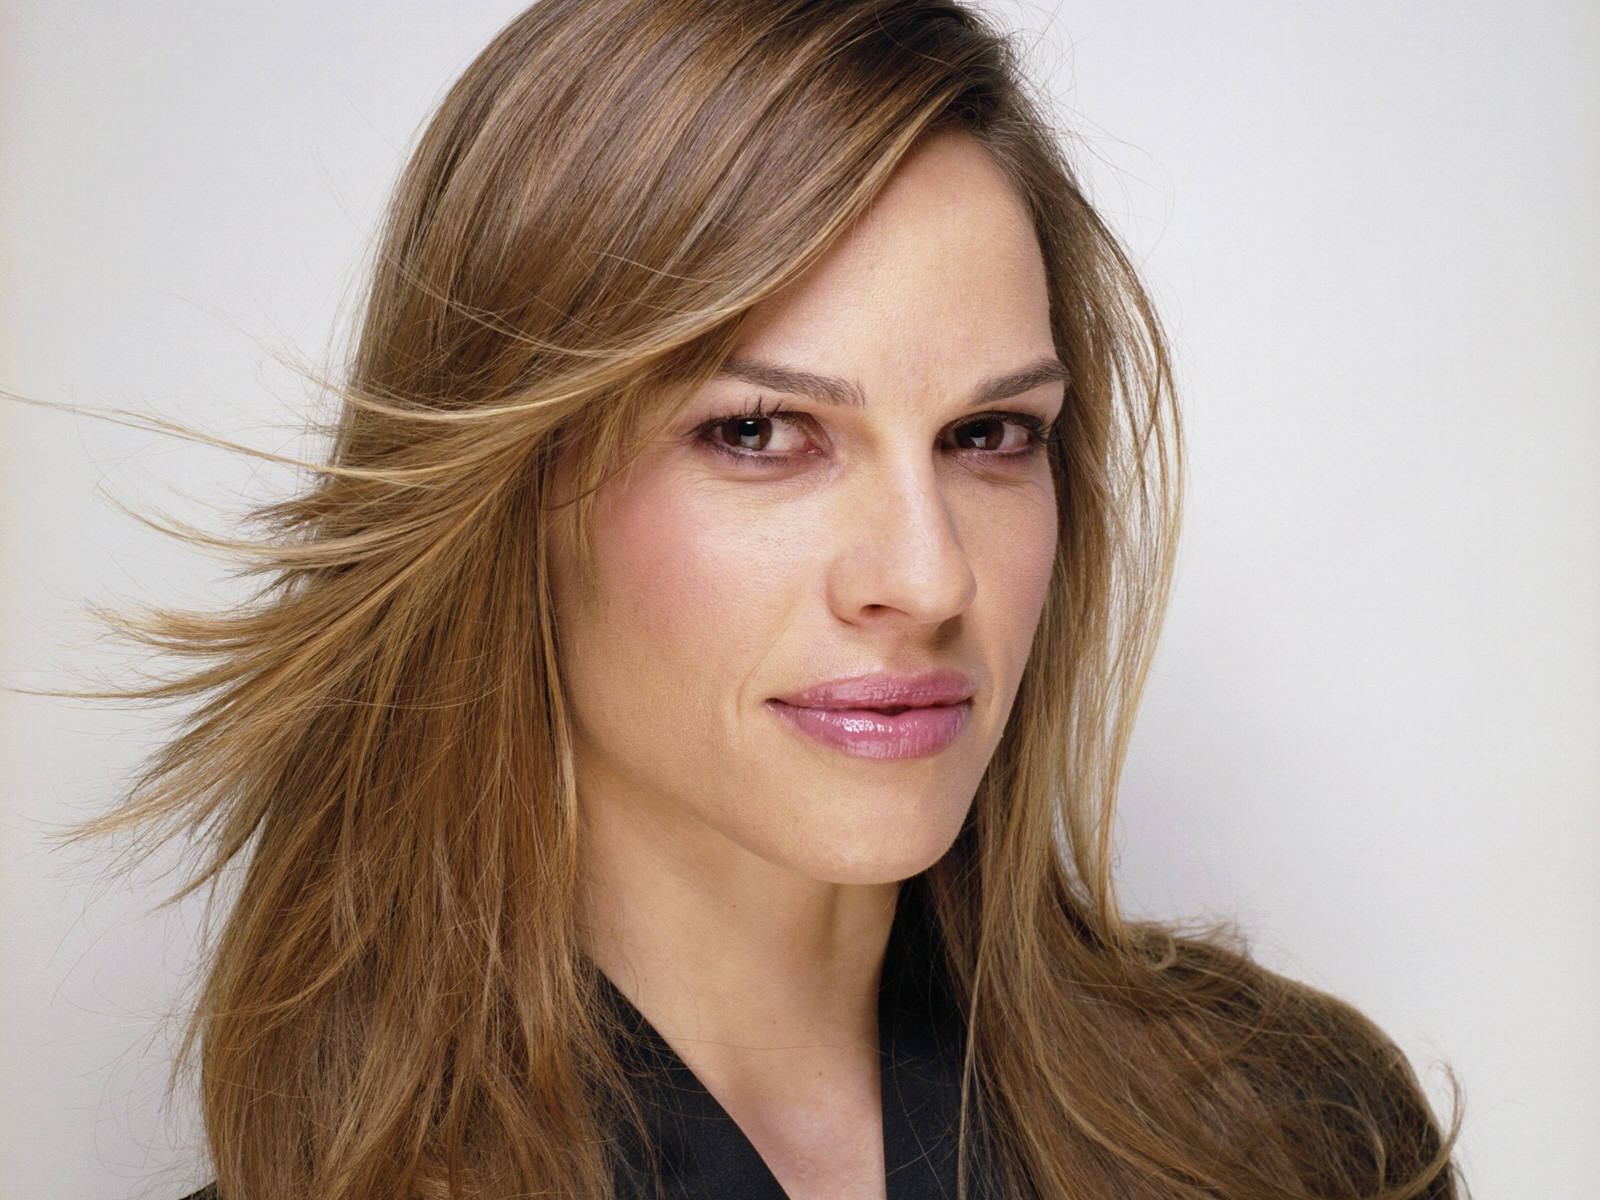 http://www.starok.com/html/photos/more/hilary-swank-4356.jpg